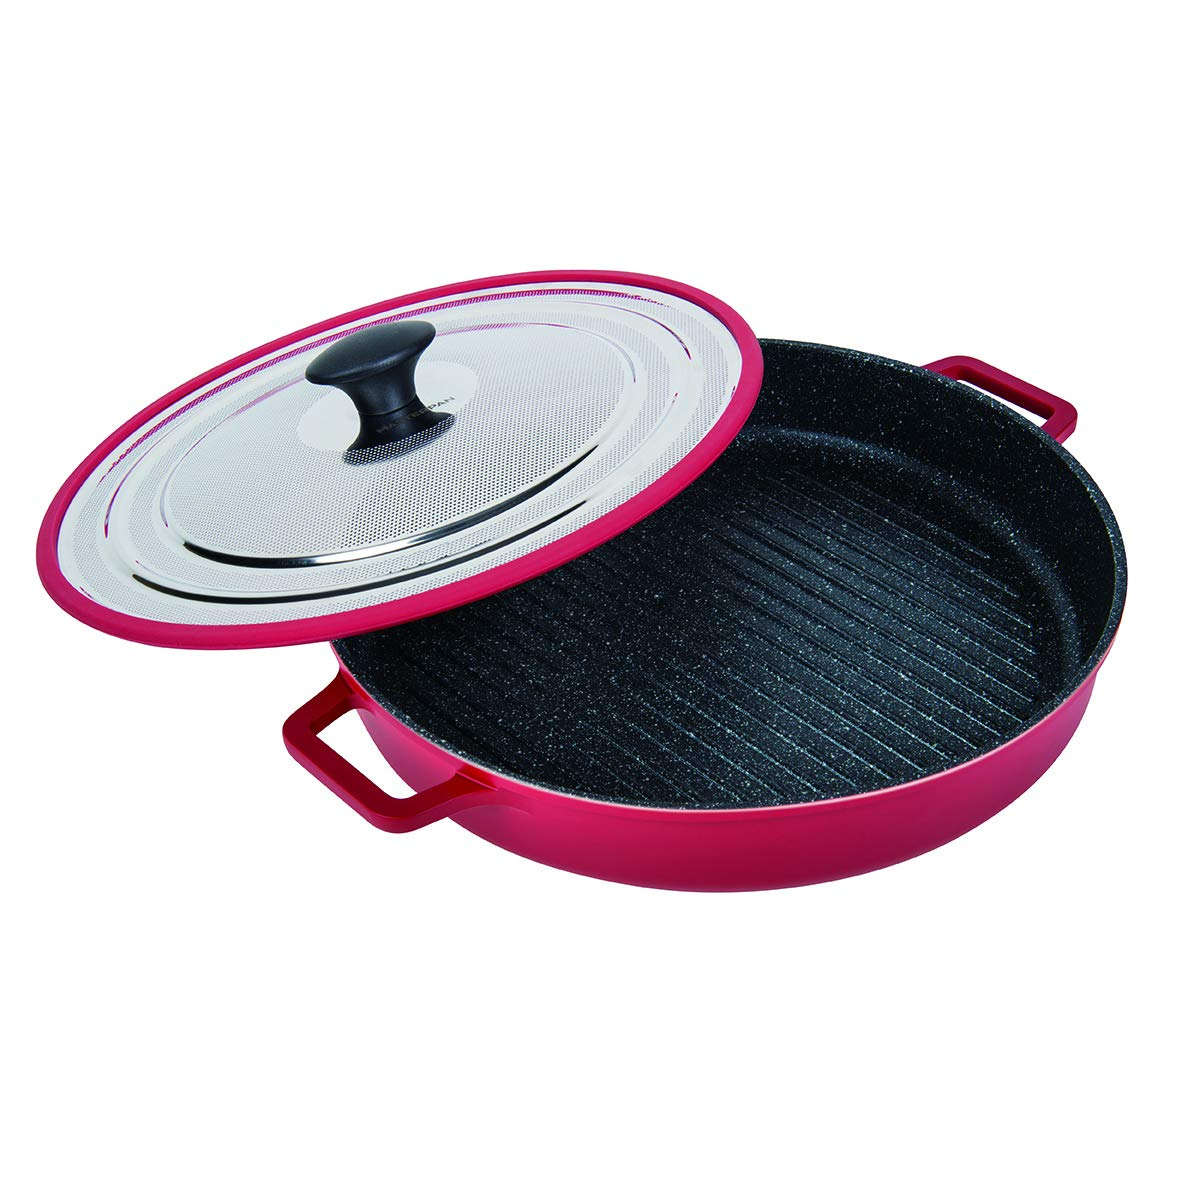 MasterPan Non-Stick Stovetop Oven Grill Pan with Heat-in Steam-Out Lid, nonstick cookware, 12'', Red, MP-106